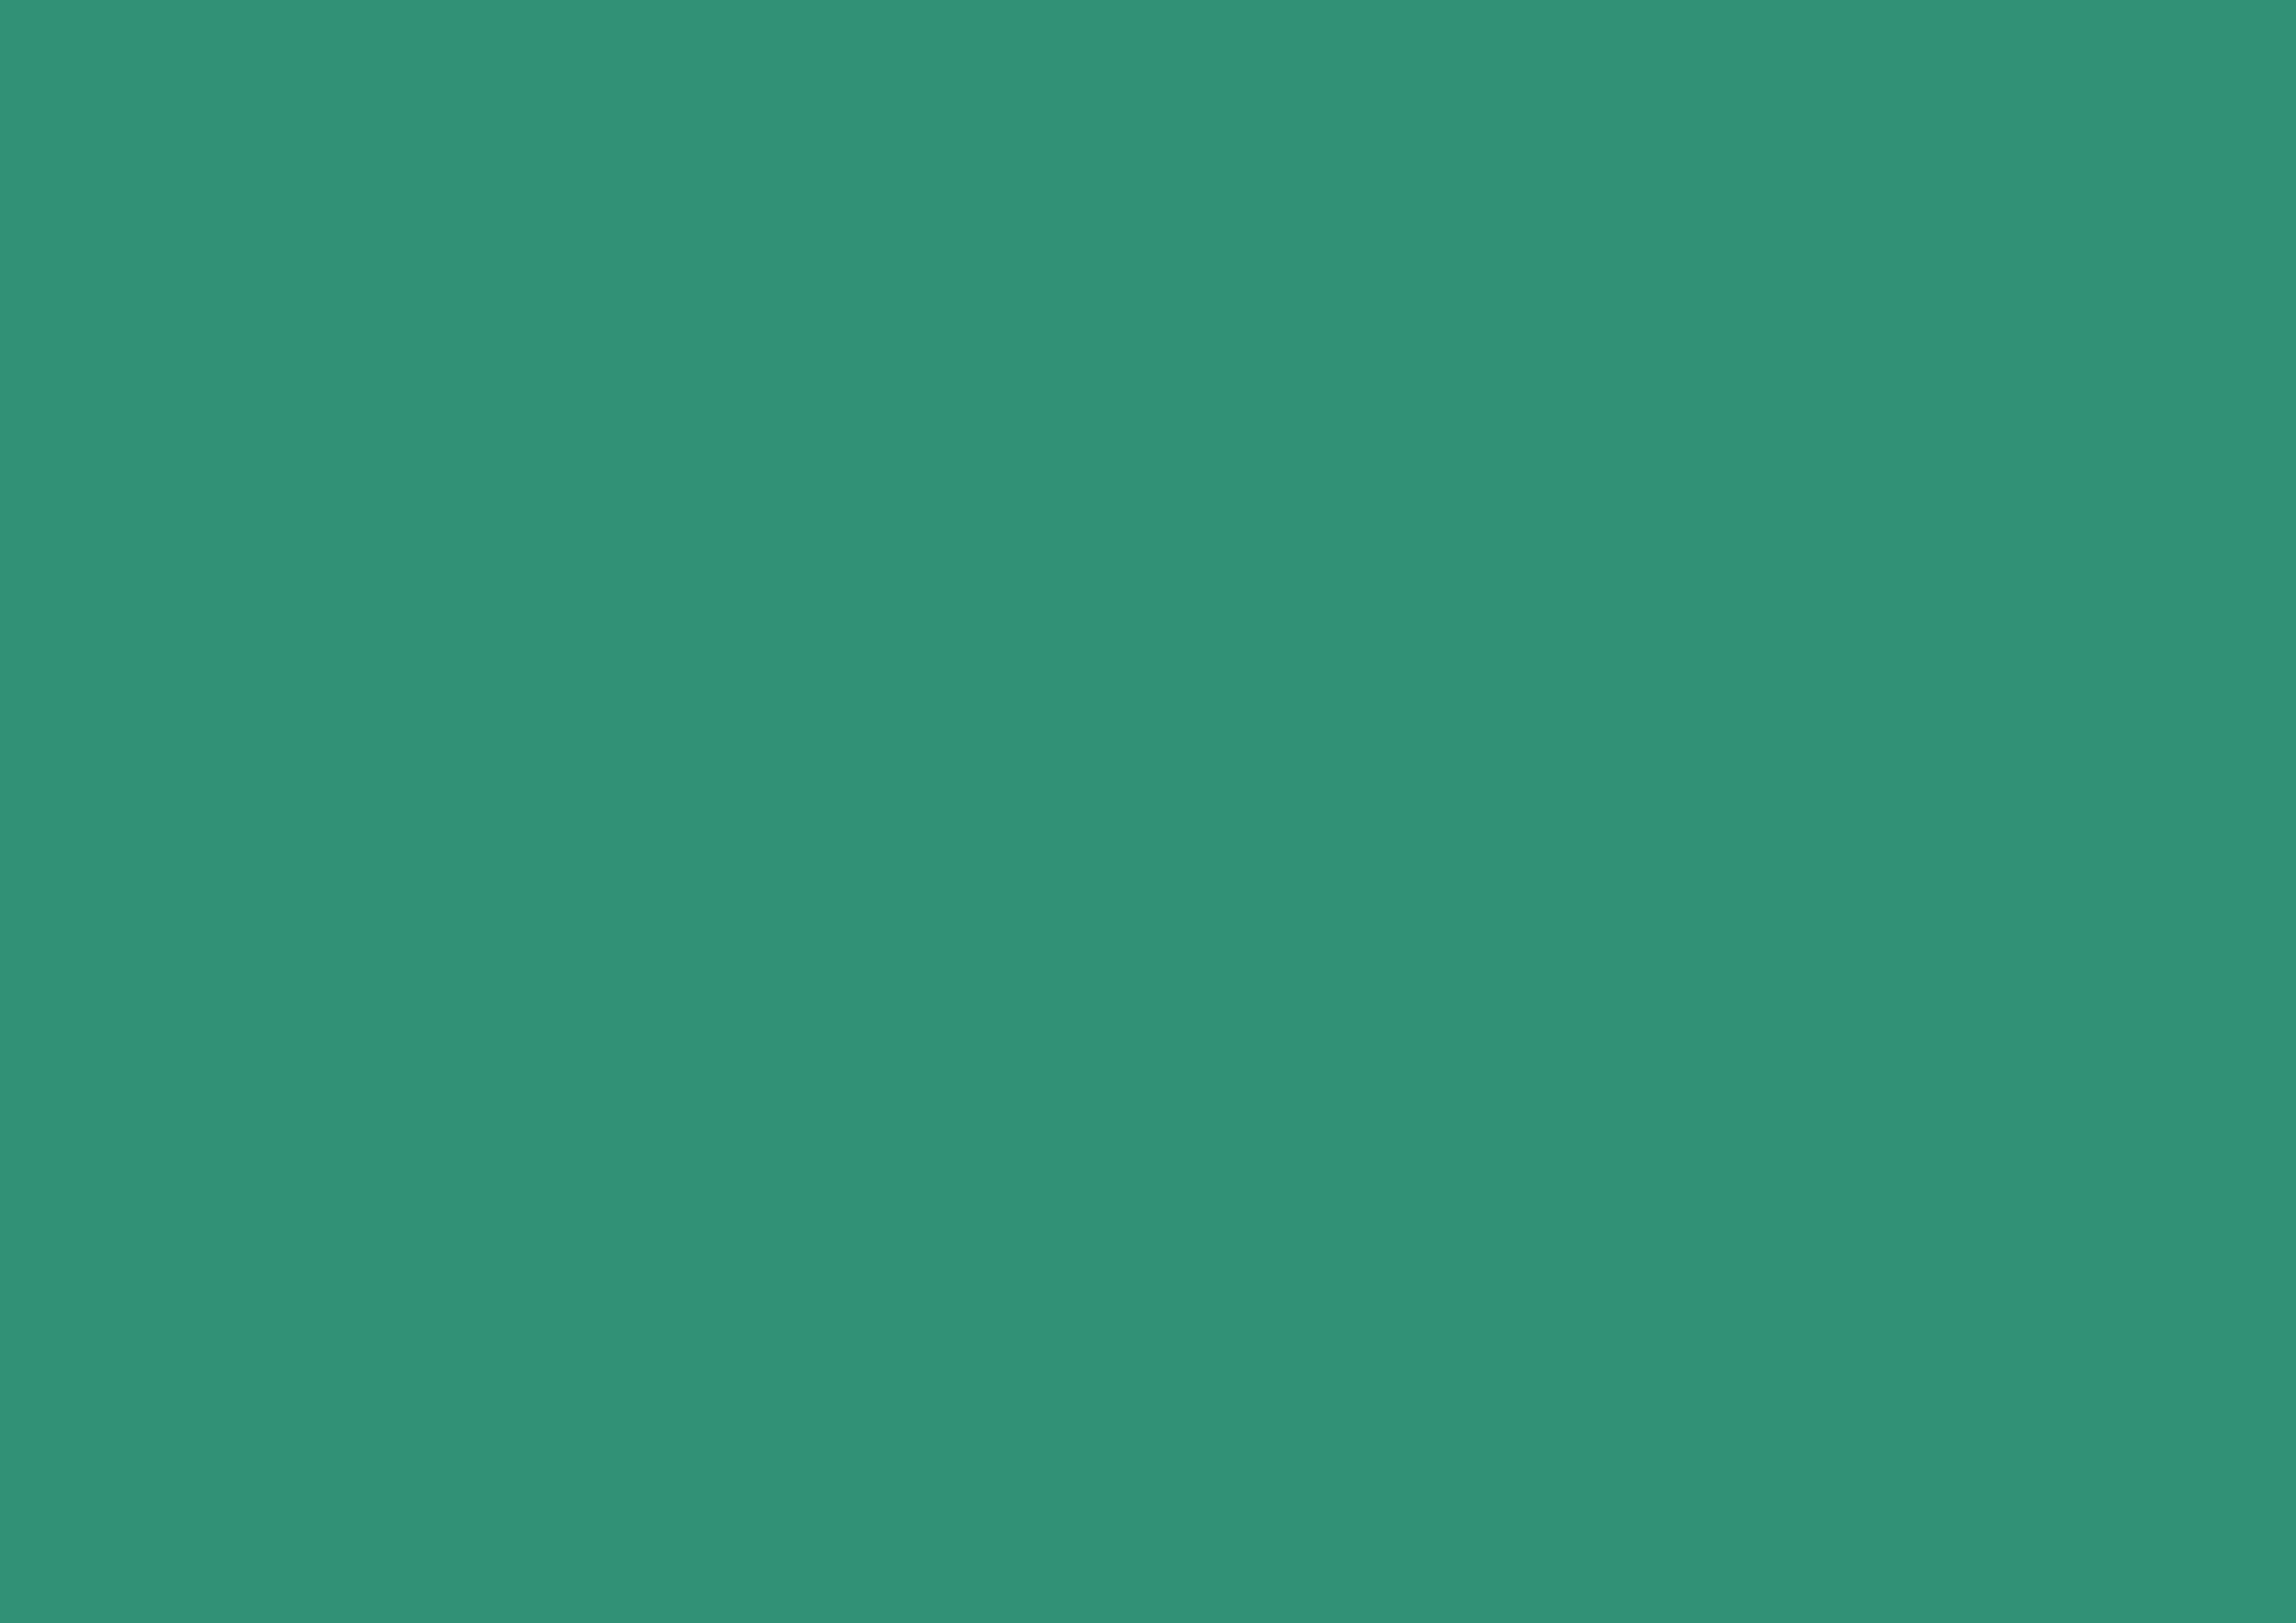 3508x2480 Illuminating Emerald Solid Color Background